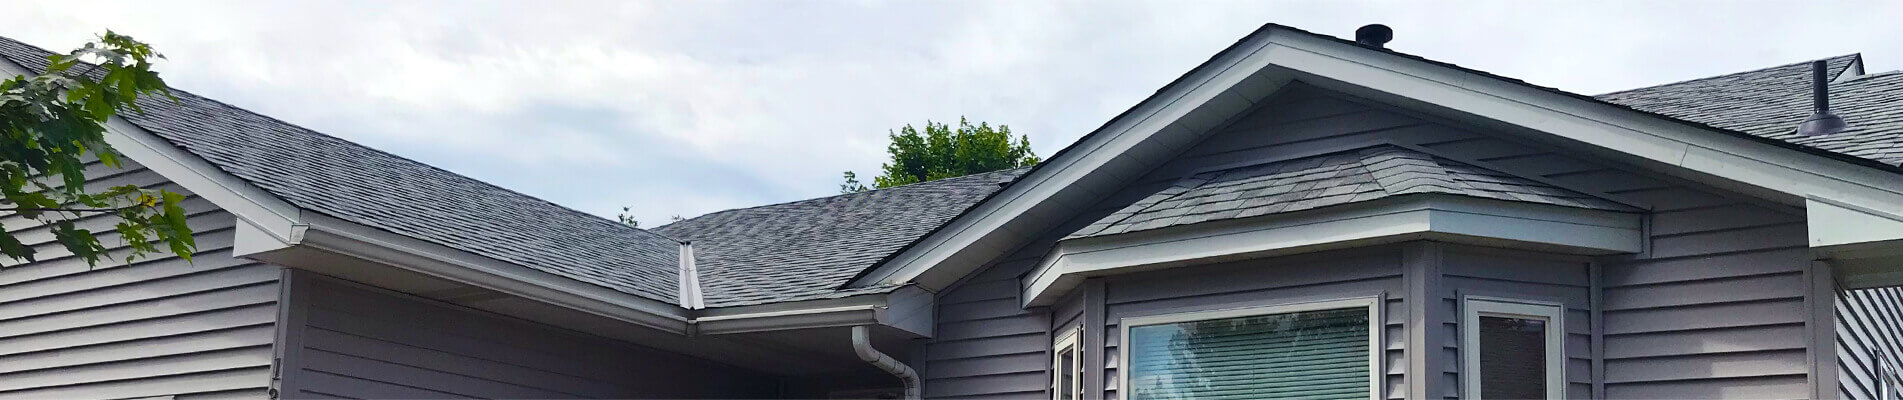 residential-commercial-roofing.jpg